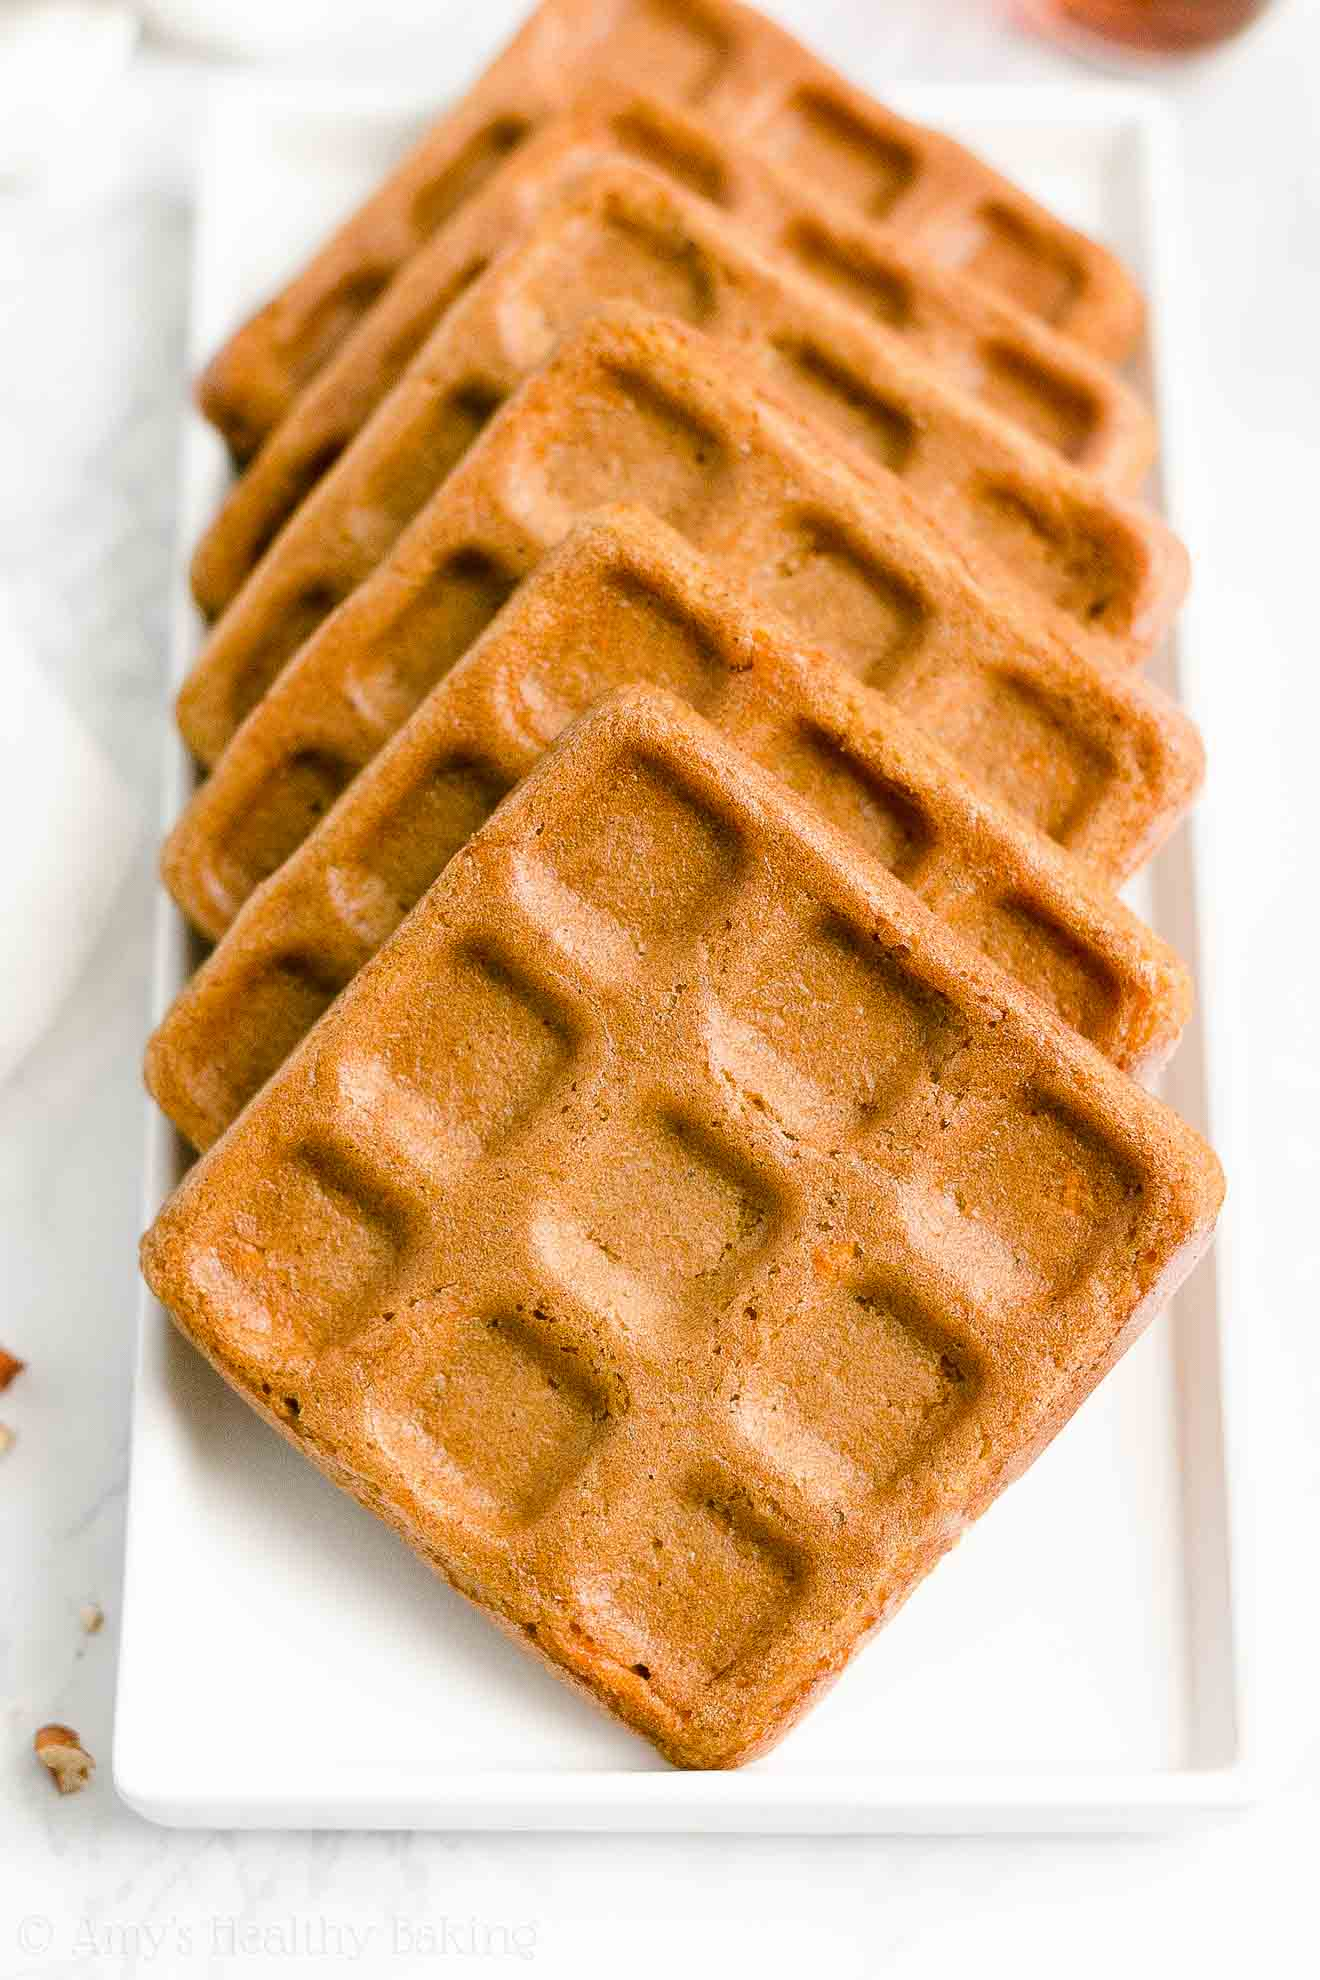 Easy Healthy Homemade Gluten Free Fluffy Crispy Carrot Cake Waffles